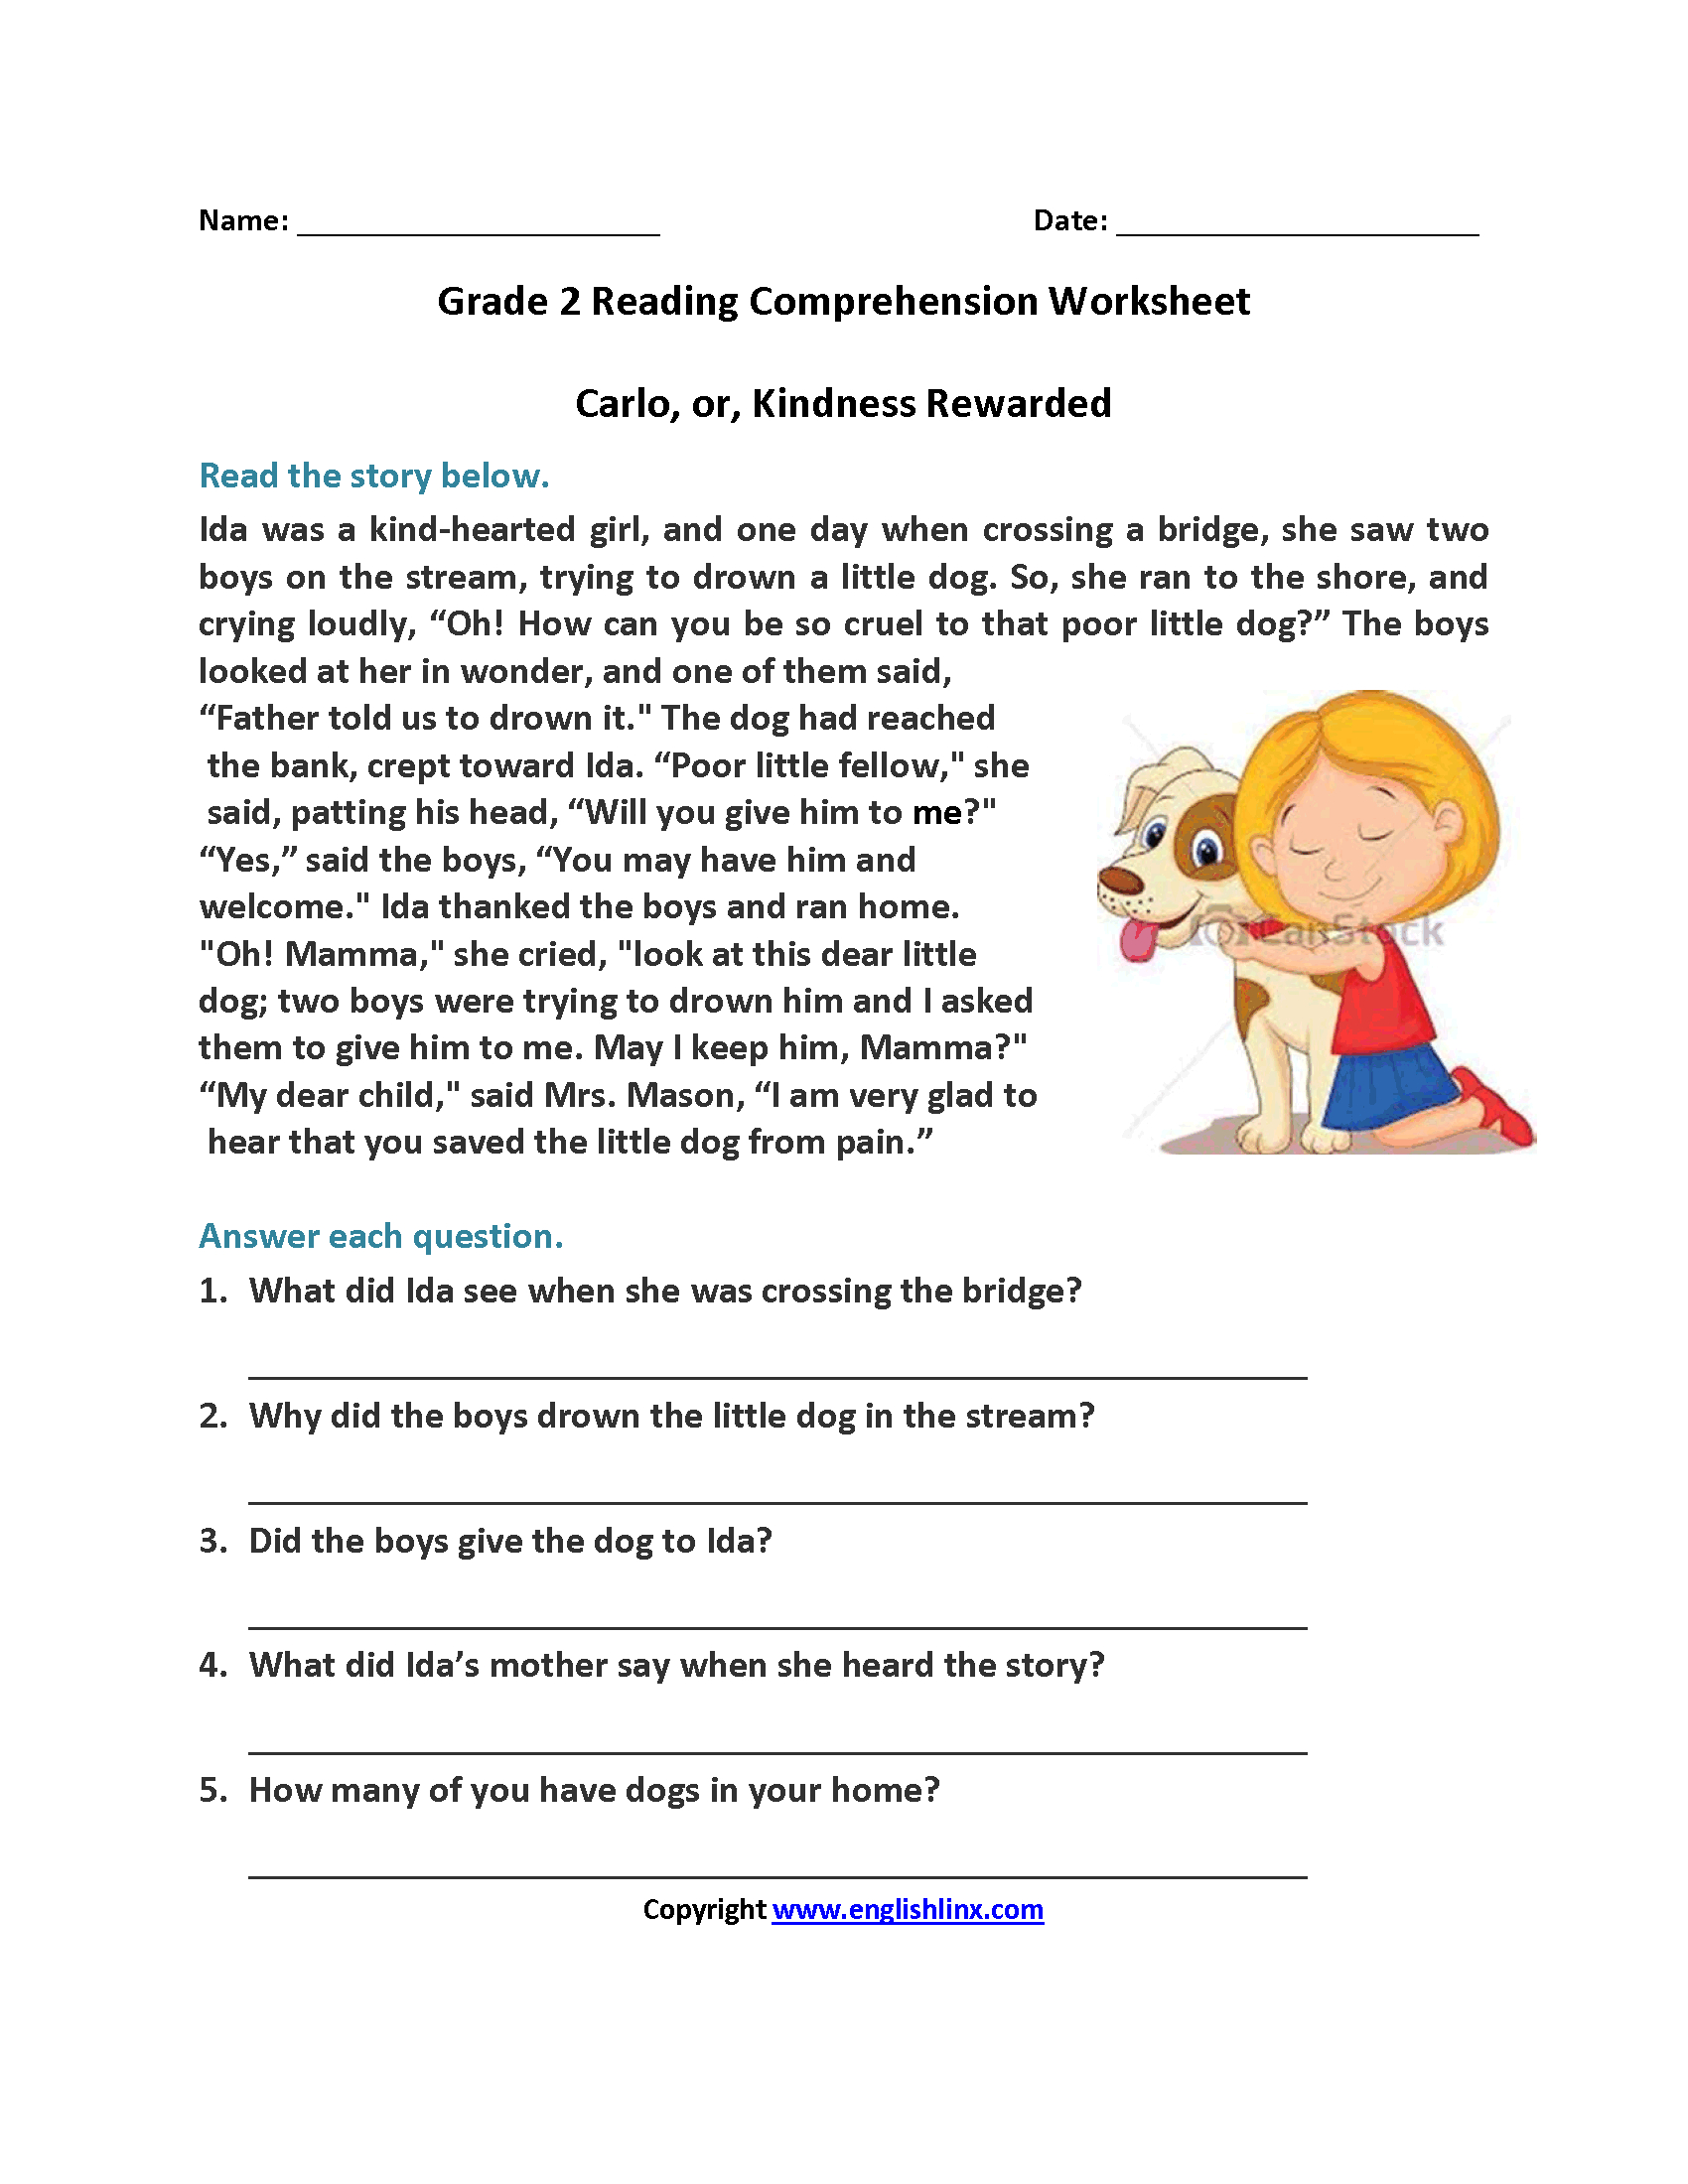 Third Grade Reading Worksheets Free Printable | Free Printable